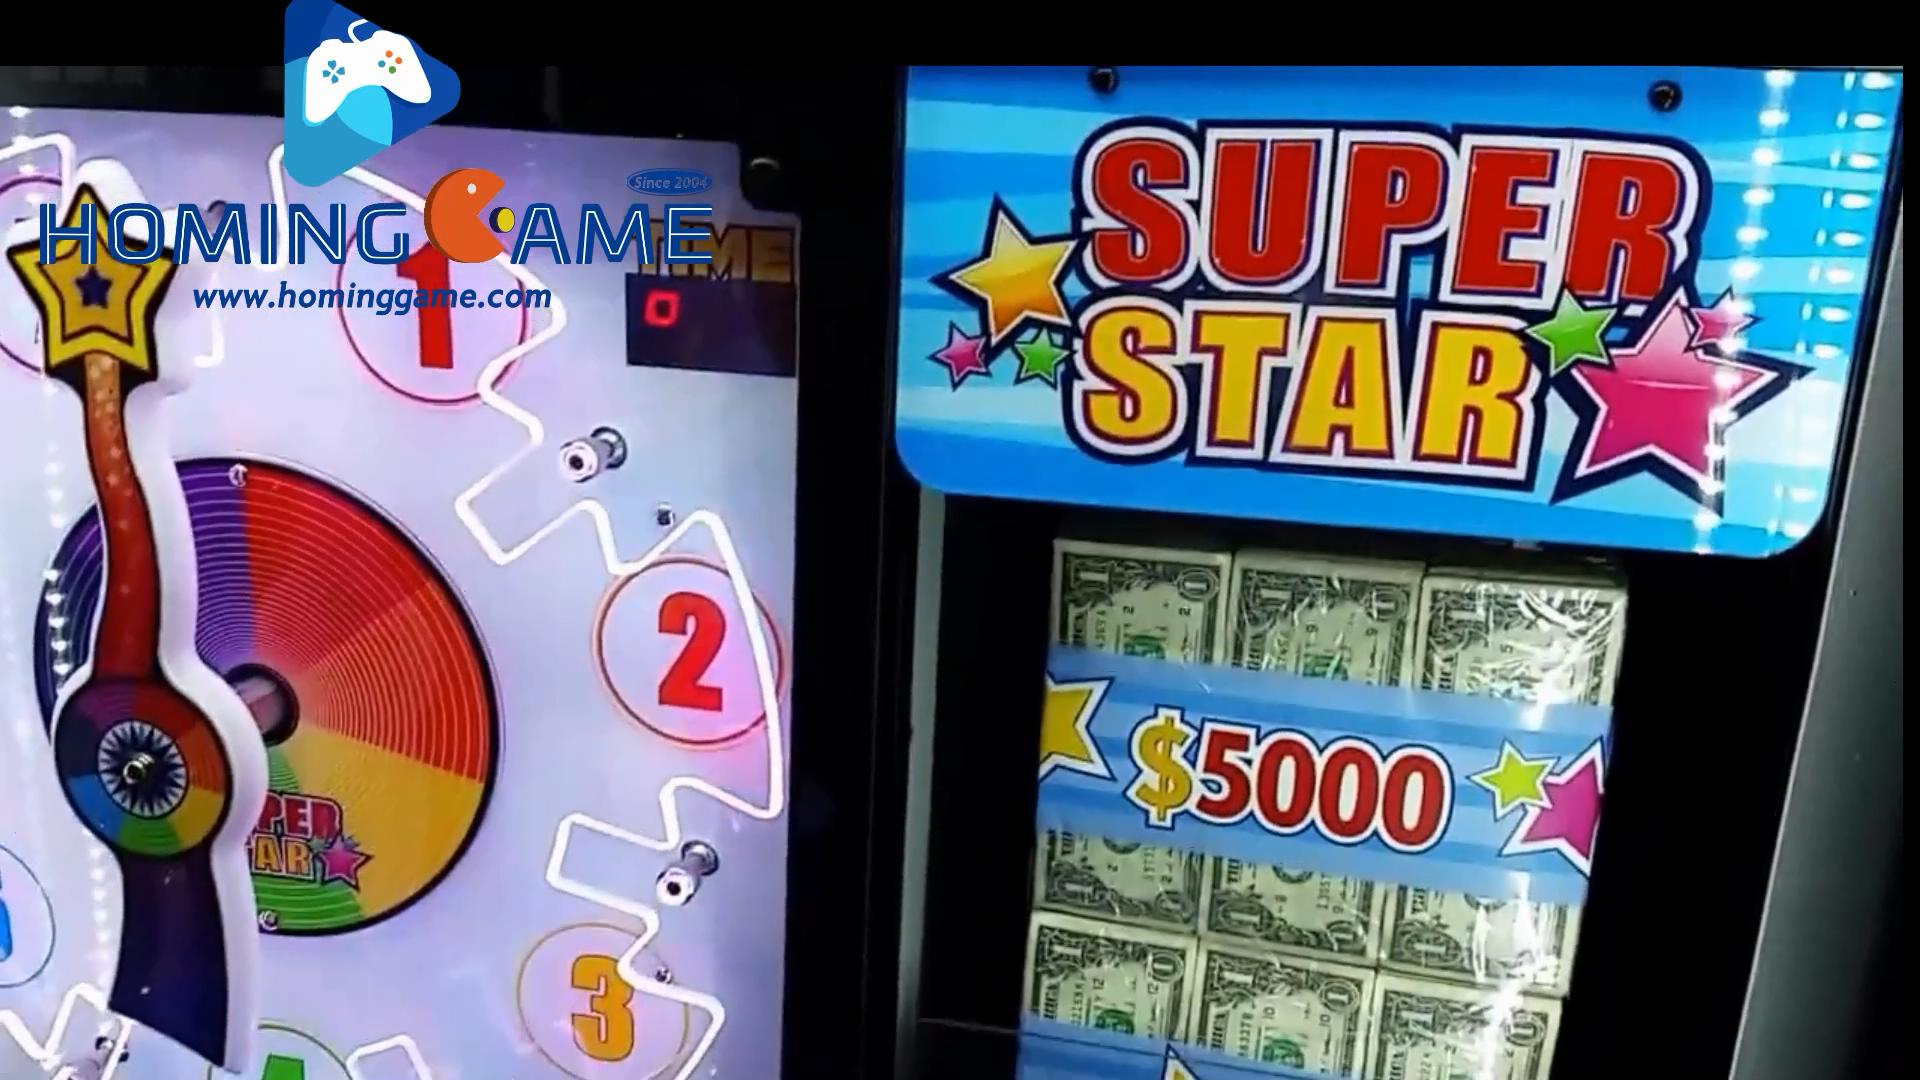 super star prize game machine,super star arcade game machine,super star prize redemption game machine,super star,lucky star prize game machine,lucky star,lucky star arcade game machine,game machine,arcade game machine,coin operated game machine,indoor game machine,entertainment game machine,amusement park game equipment,game equipment,indoor games,arcade games,slot game machine,amusement machine,skill pirze game machine,prize redemption game machine,gift game machine,gift machine,coin operated arcade games,gametube.hk,www.gametube.hk,hominggame.com,www.hominggame.com,key master arcade game machine,winner cube prize game machine,barber cut prize game machine,cut string prize game machine,cut arcade game machine,scissor prize game machine,indoors,vending machine,entertainment machine,entertainment game,hominggame prize game machine,prize redemption machine,pirze machine,gift games,crane machine,claw machine,claw crane machine,prize game machine,hominggame,www.gametube.hk